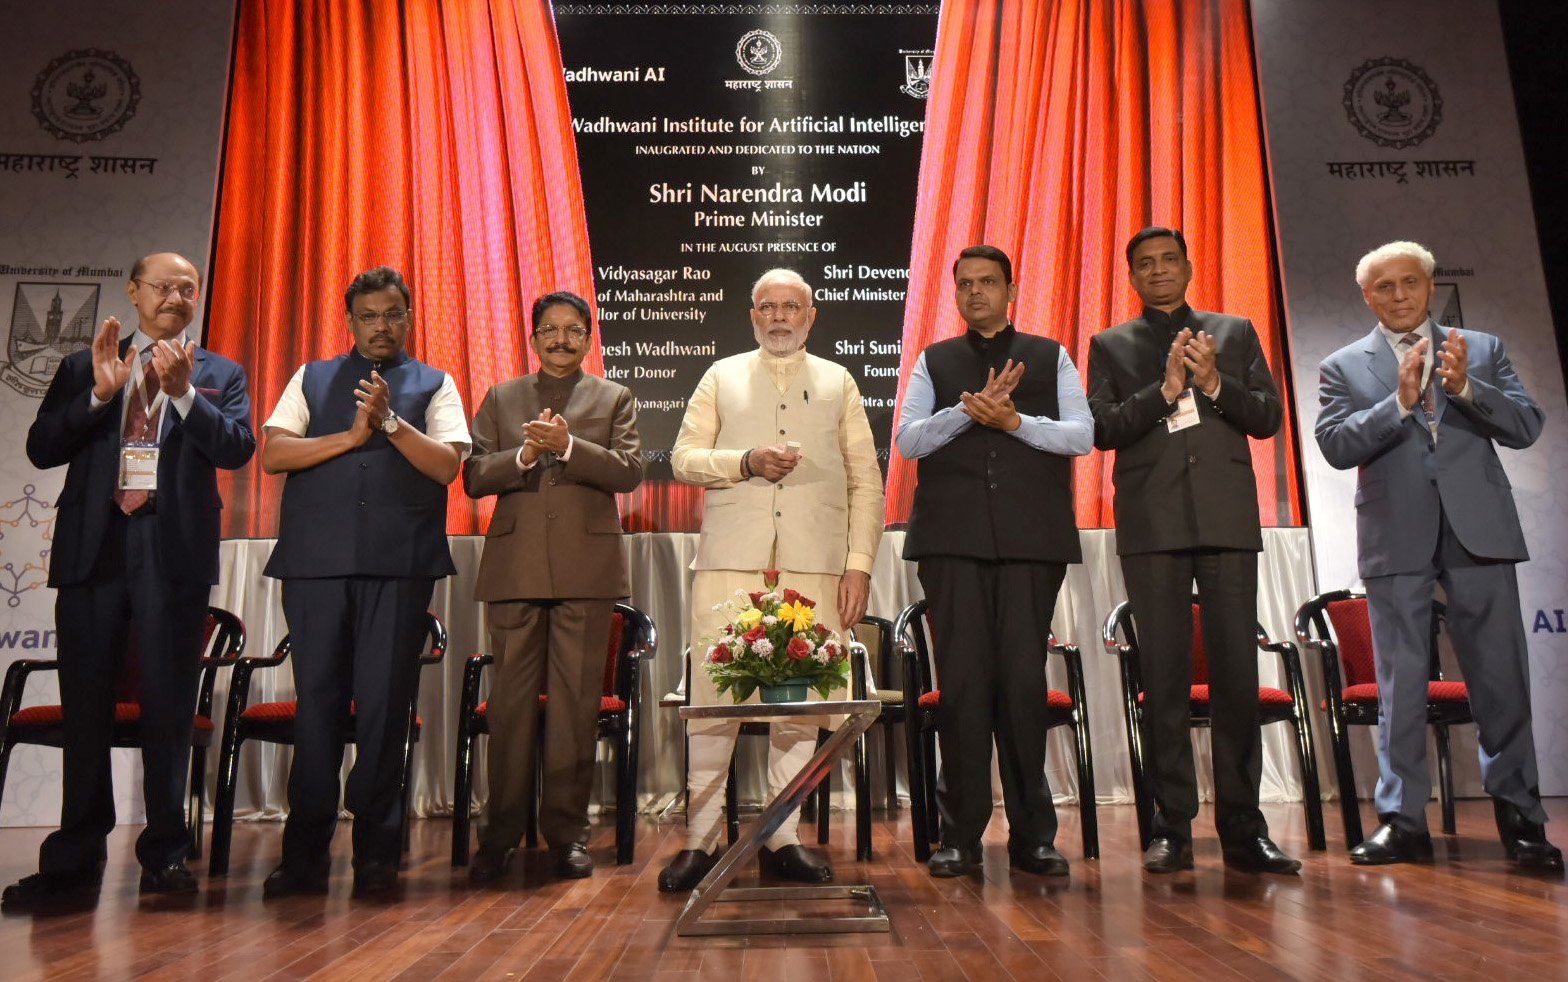 Prime Minister, Shri Narendra Modi at the inauguration of the Wadhwani Institute for Artificial Intelligence, in Mumbai, Maharashtra(Courtesy of Twitter)